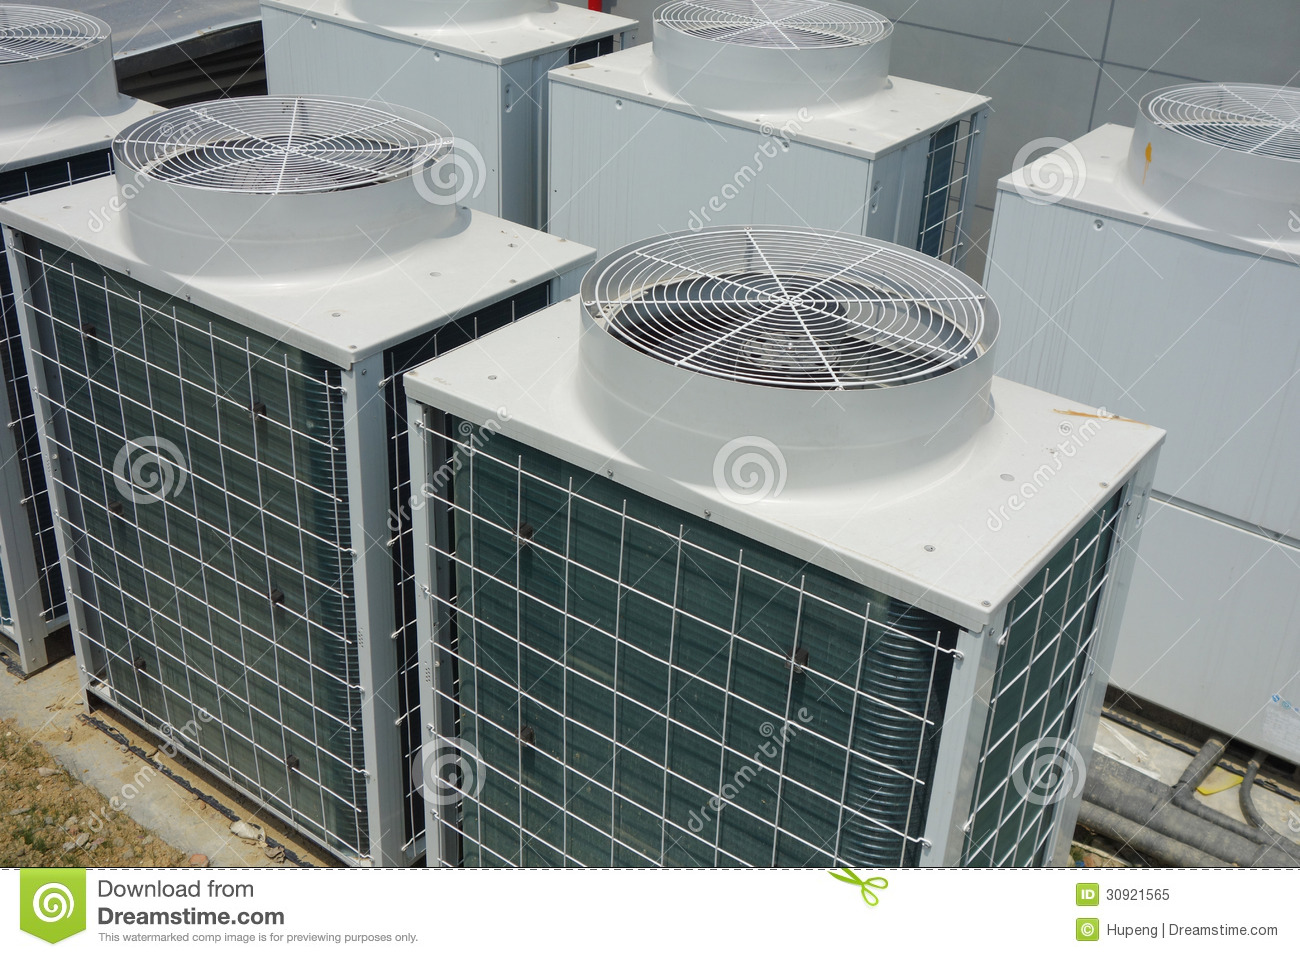 Air Conditioner Conditioning Unit likewise Trane Vs Ruud Vs Carrier in addition Getimage Id additionally Centralspecs in addition . on central air conditioner prices